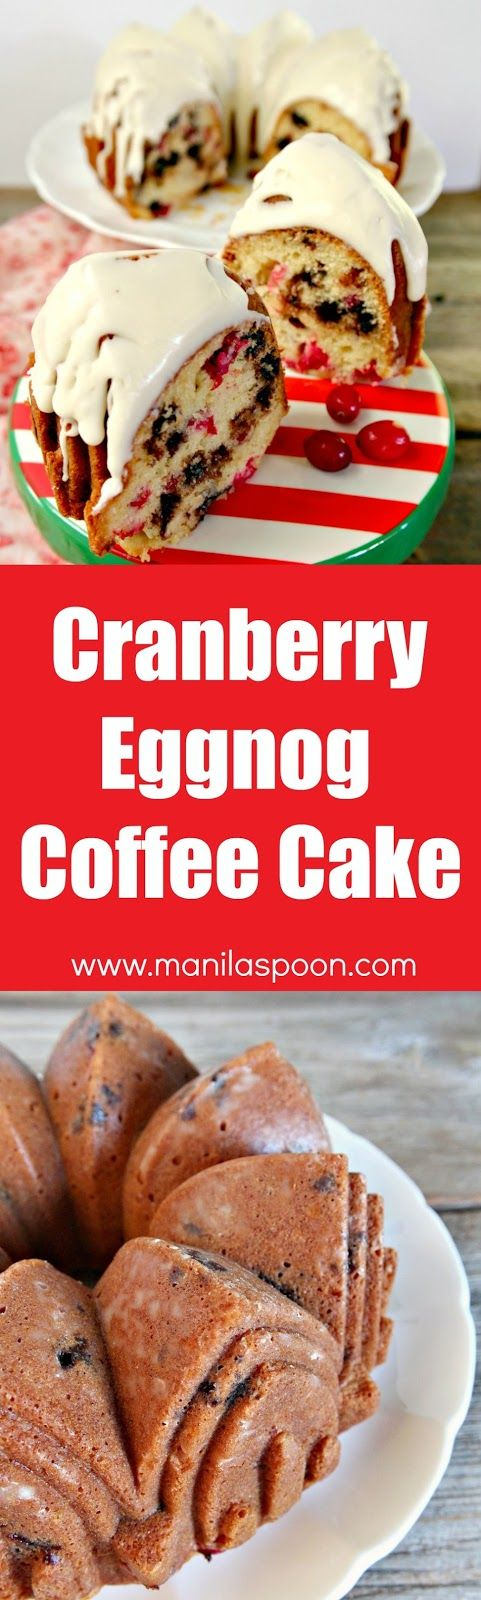 No need for a mixer to make this easy and delicious Cranberry Eggnog and Espresso (Chocolate) Chip Cake. The perfect dessert for Christmas and New Year. Great with your fave coffee drink, too!   manilaspoon.com